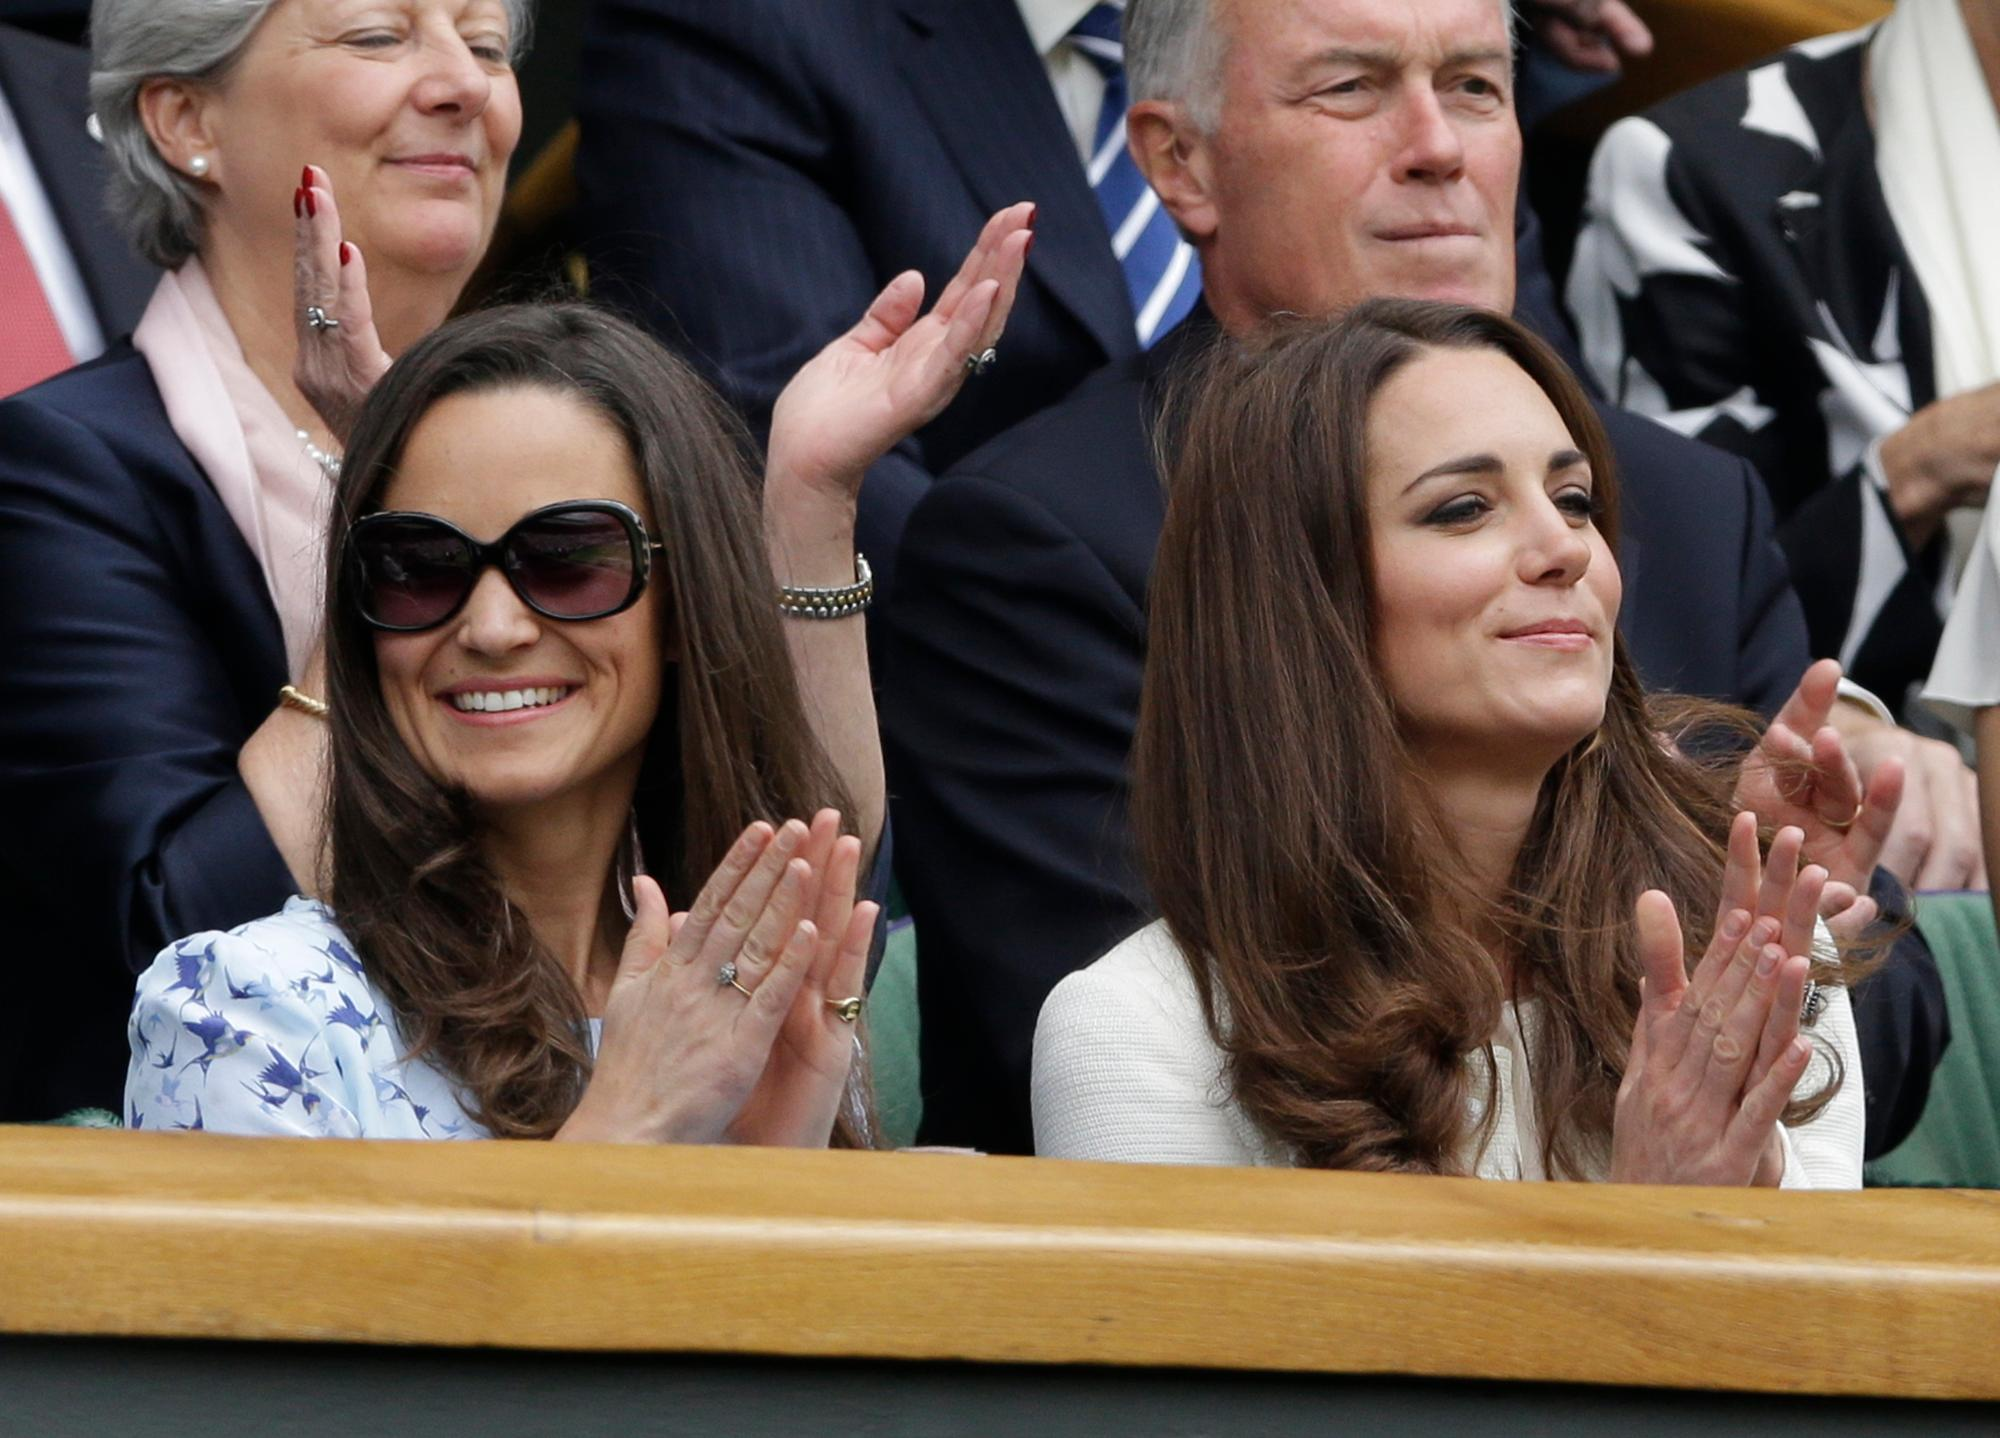 FILE - In this Sunday, July 8, 2012 file photo, Kate, Duchess of Cambridge, right, and her sister Pippa Middleton, left, applaud before the start of the men's singles final between Roger Federer of Switzerland and Andy Murray of Britain at the All England Lawn Tennis Championships at Wimbledon, England. 33-year-old Pippa Middleton is marrying a wealthy financier in the village of Englefield, west of London on Saturday May 20, 2017, with a guest list of young A-list royals and reality TV stars looking on. (AP Photo/Kirsty Wigglesworth, File)